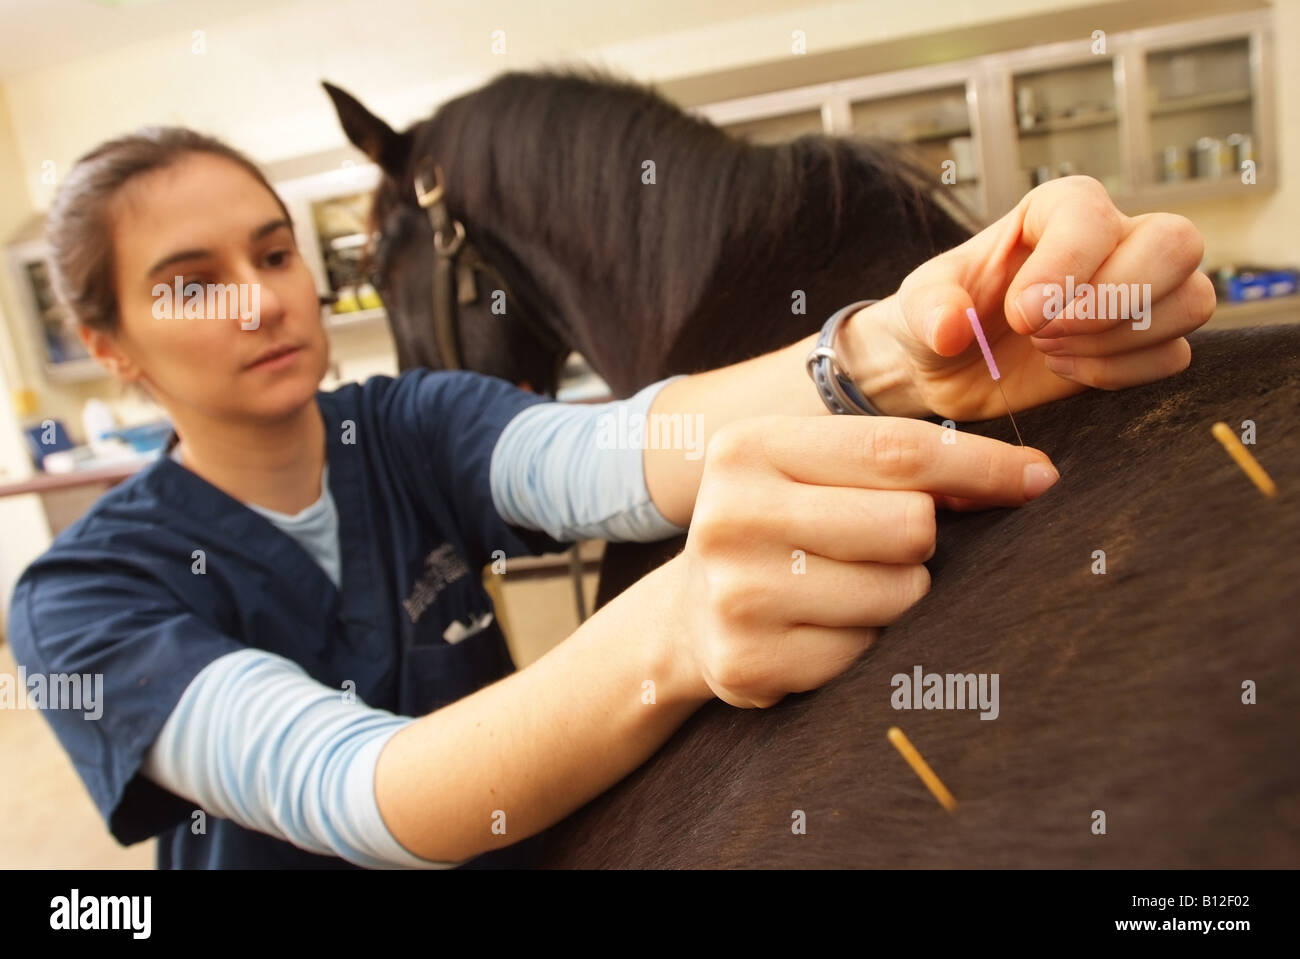 veterinarian-alison-smith-performs-acupuncture-on-a-horse-at-the-leesburg-B12F02.jpg